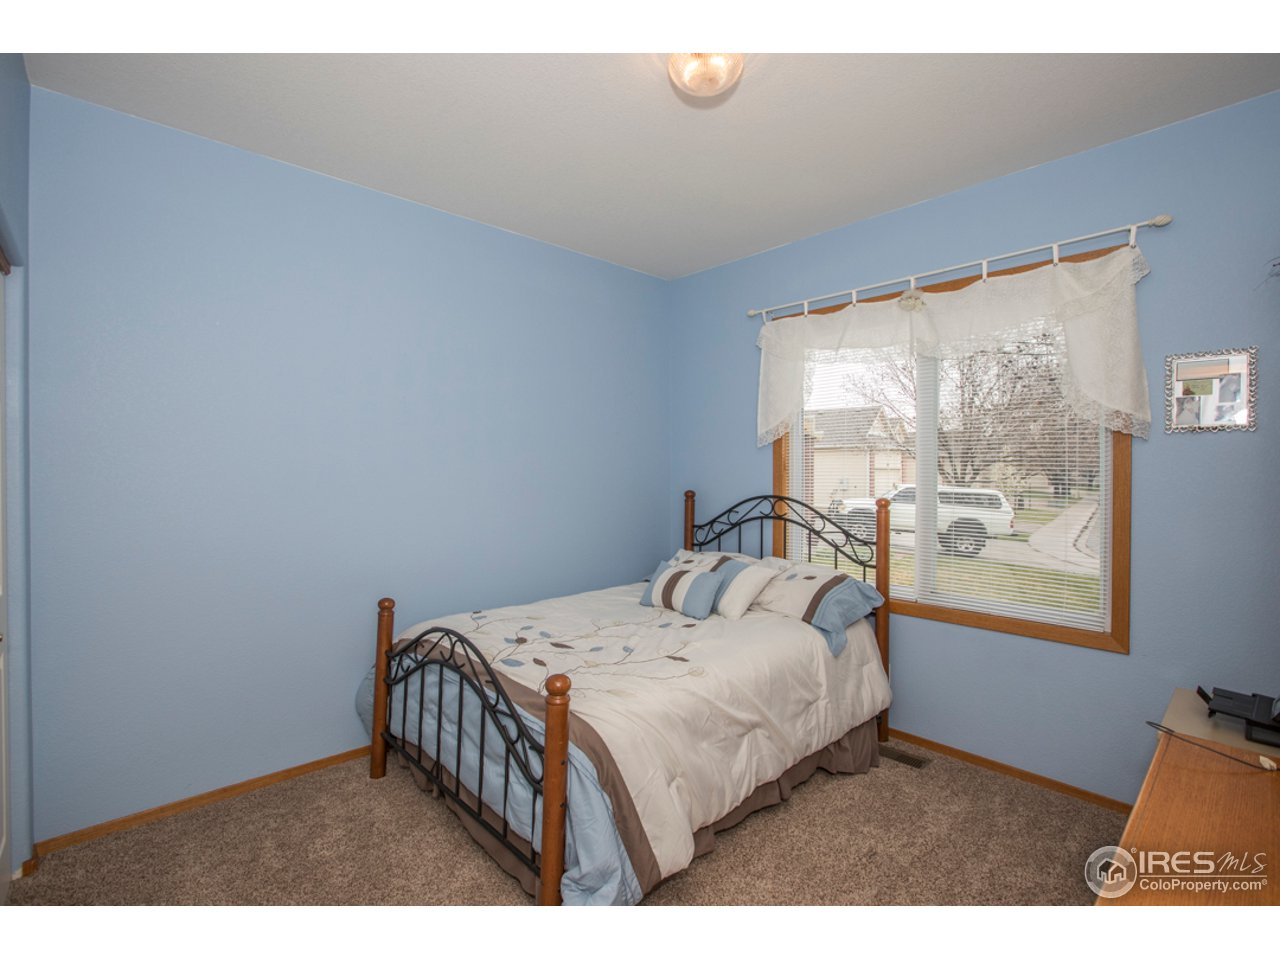 This is the front bedroom #2